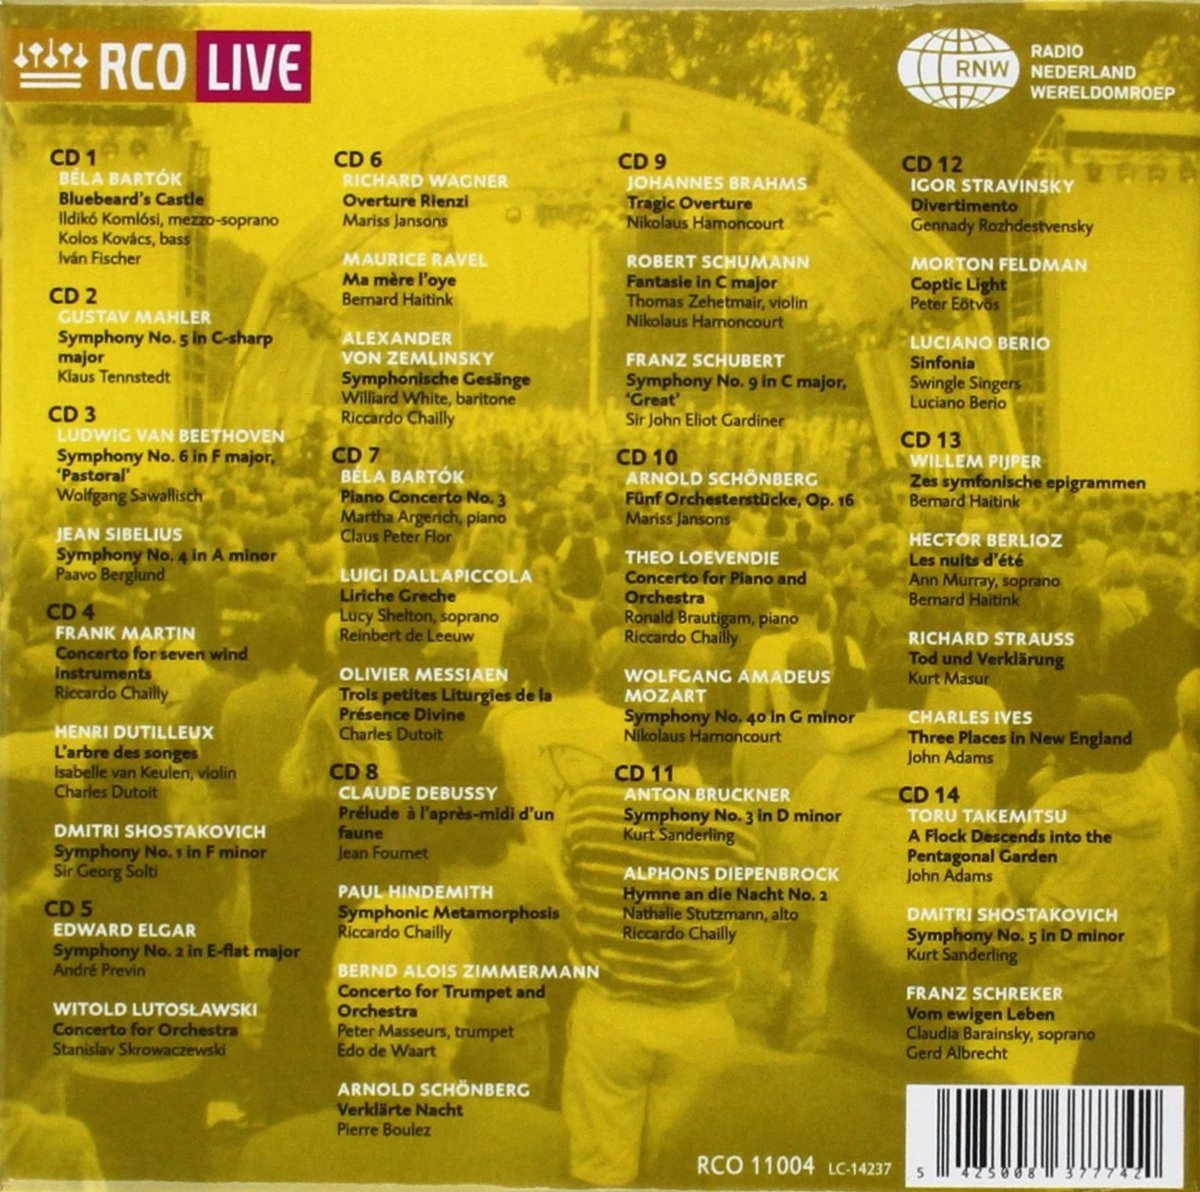 Royal Concertgebouw Orchestra: Anthology Live 1990-2000 by RCO